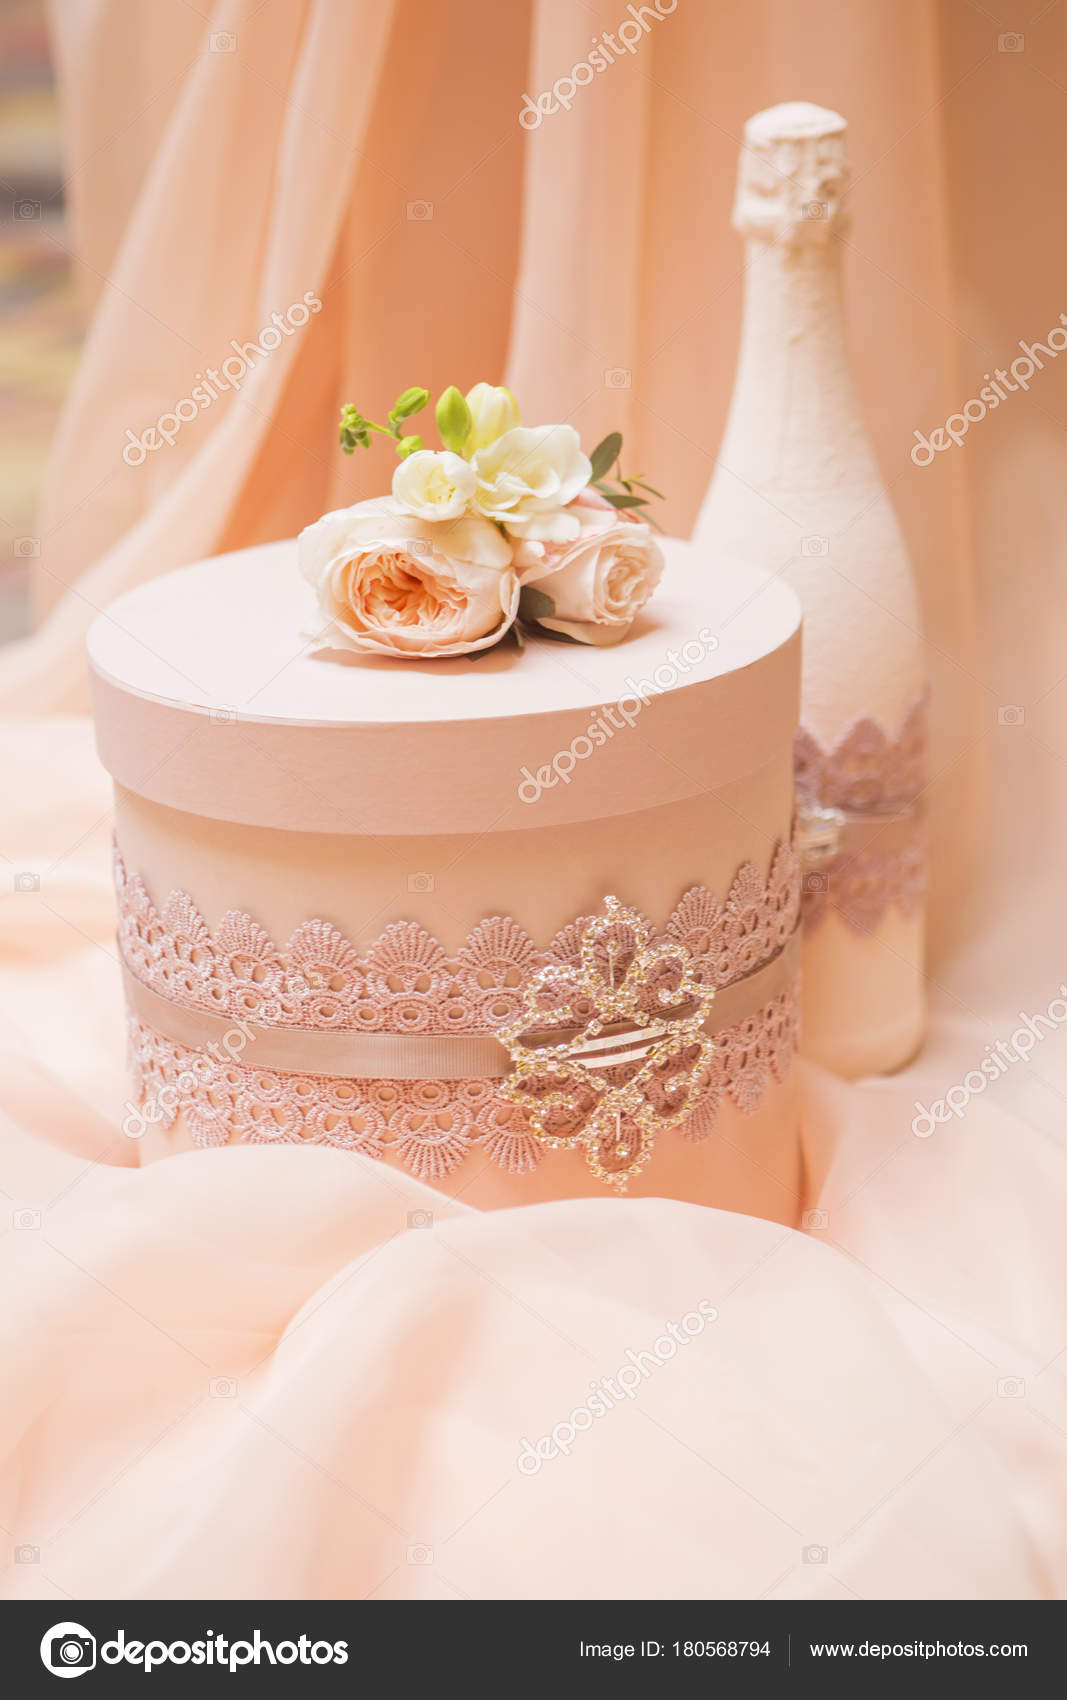 wedding arch decor full rose eustoma flowers candles peach colored